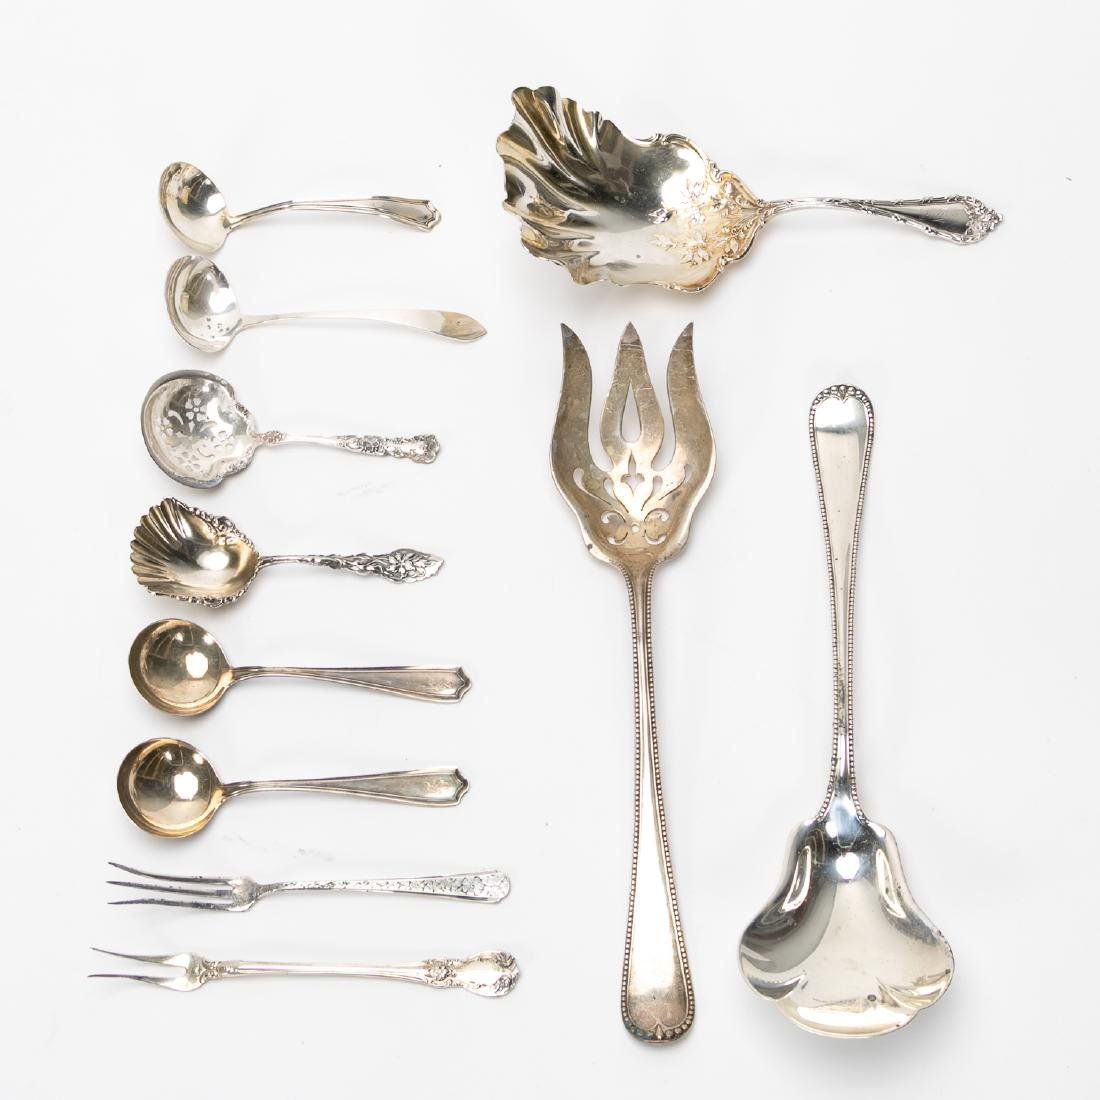 11 PC American Sterling Flatware Grouping